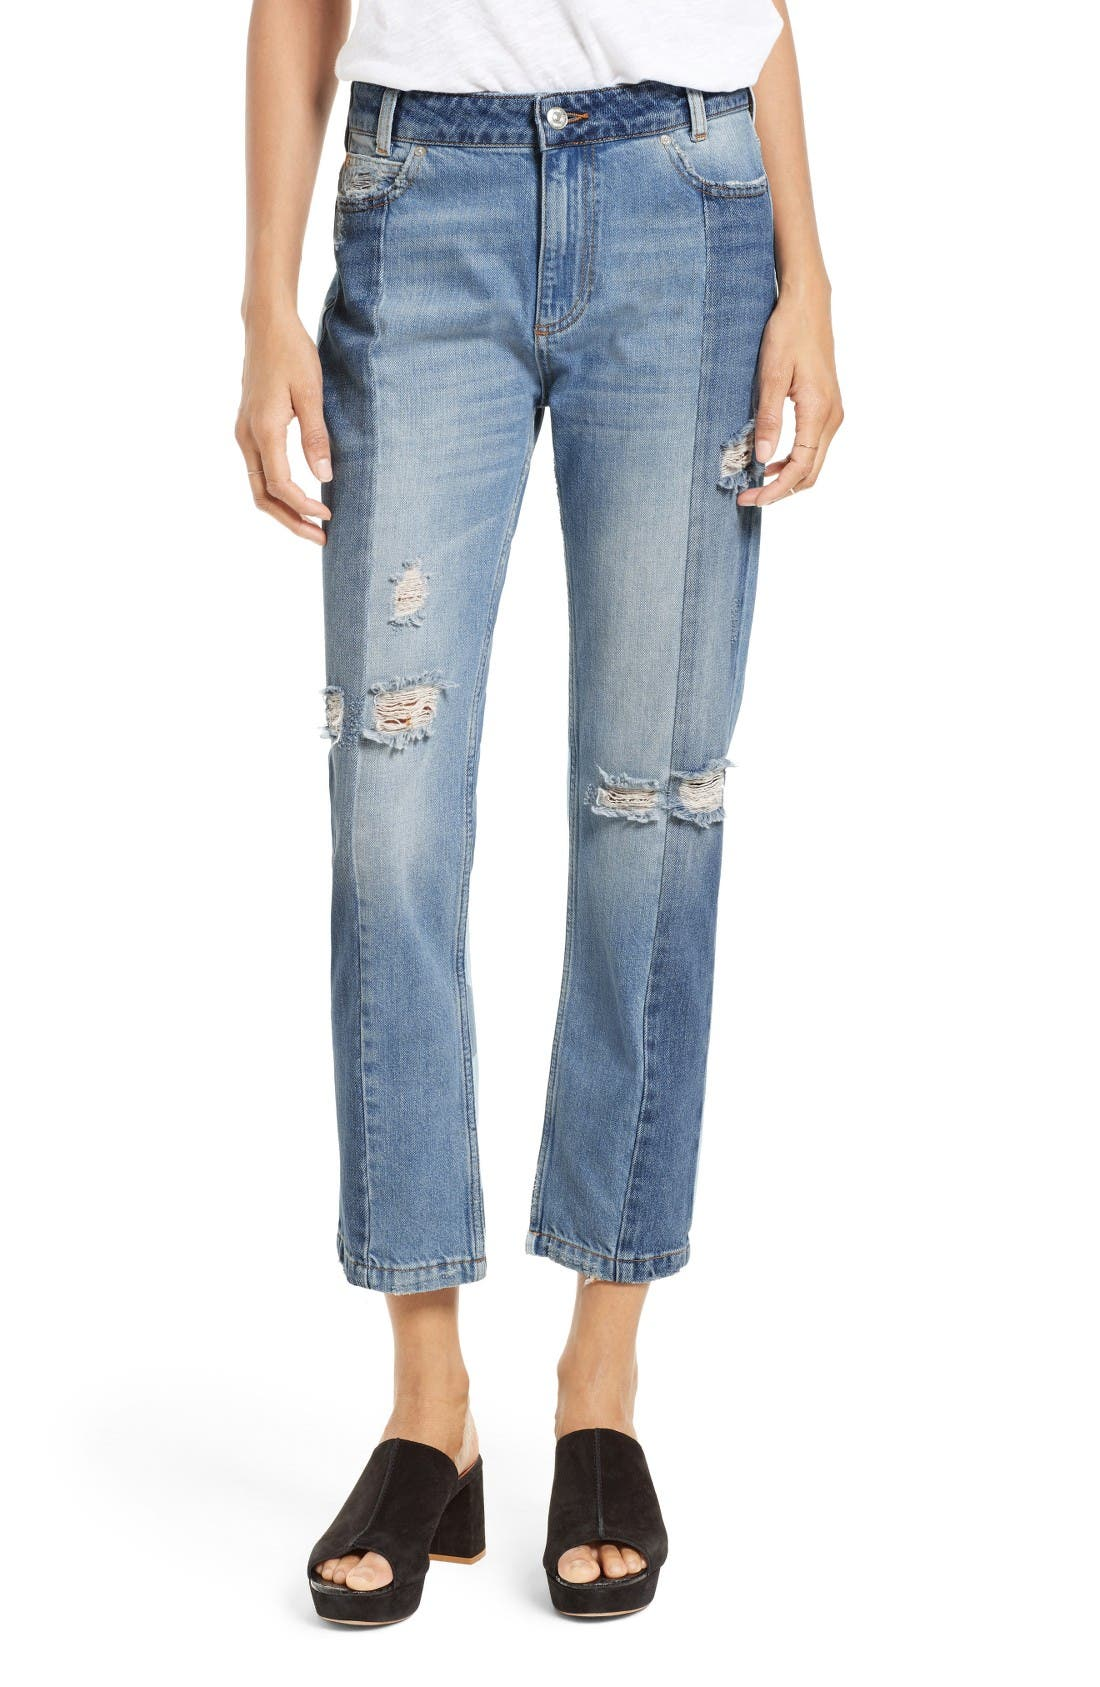 Alternate Image 1 Selected - Free People The Patchwork High Waist Crop Jeans